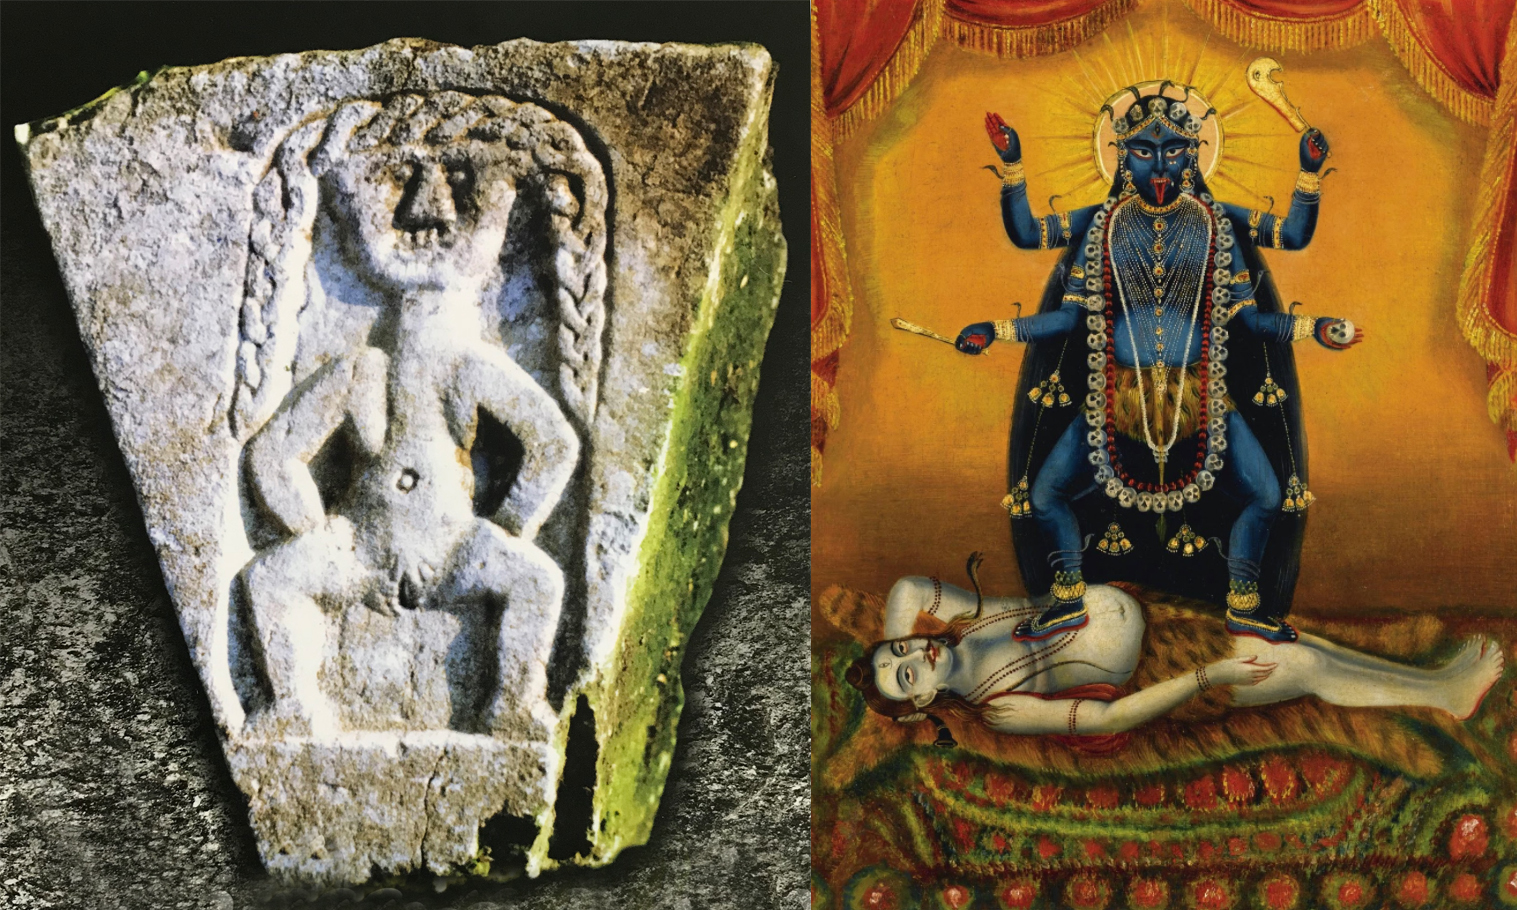 Sheela na gig (Ireland)  and Kali (India).